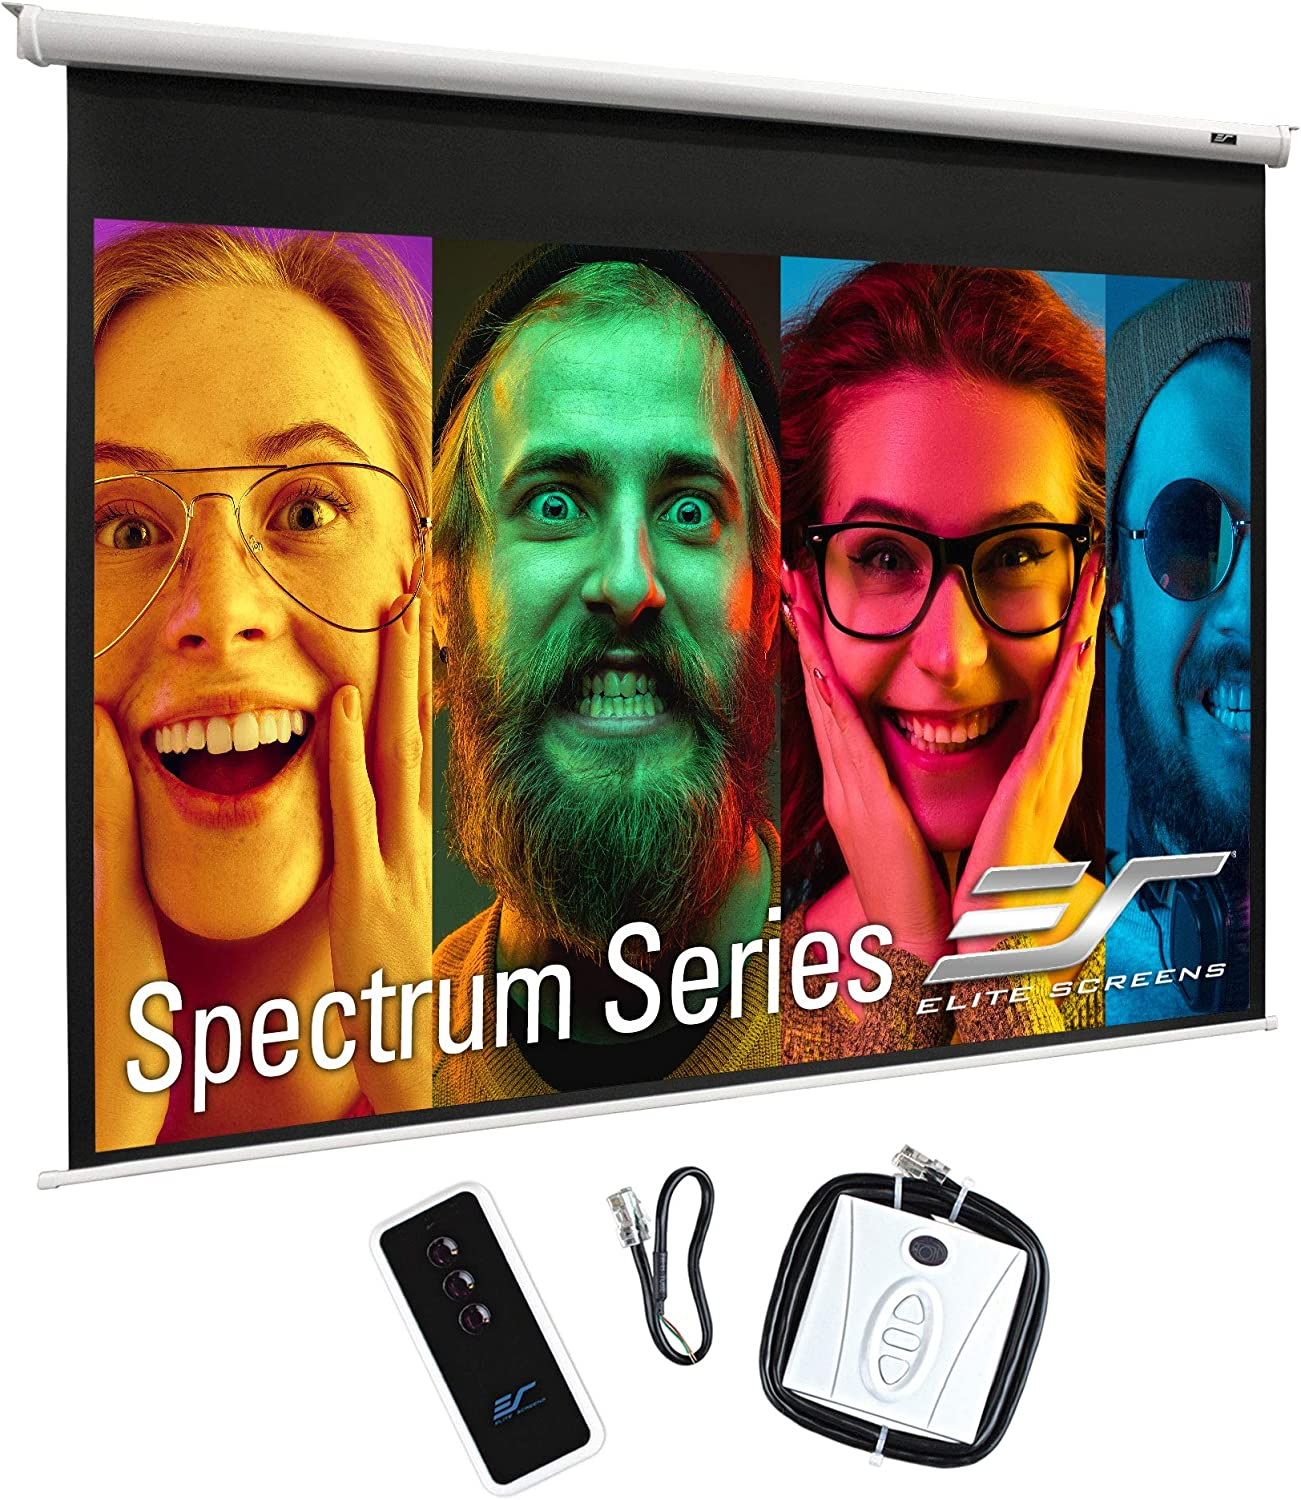 Elite Screens Spectrum Electric Motorized Projector Screen with Multi Aspect Ratio Function Max Size 120-inch Diag 4:3 + 110-inch Diag 16:9, Home Theater 8K/4K Ultra HD Ready Projection, ELECTRIC120V